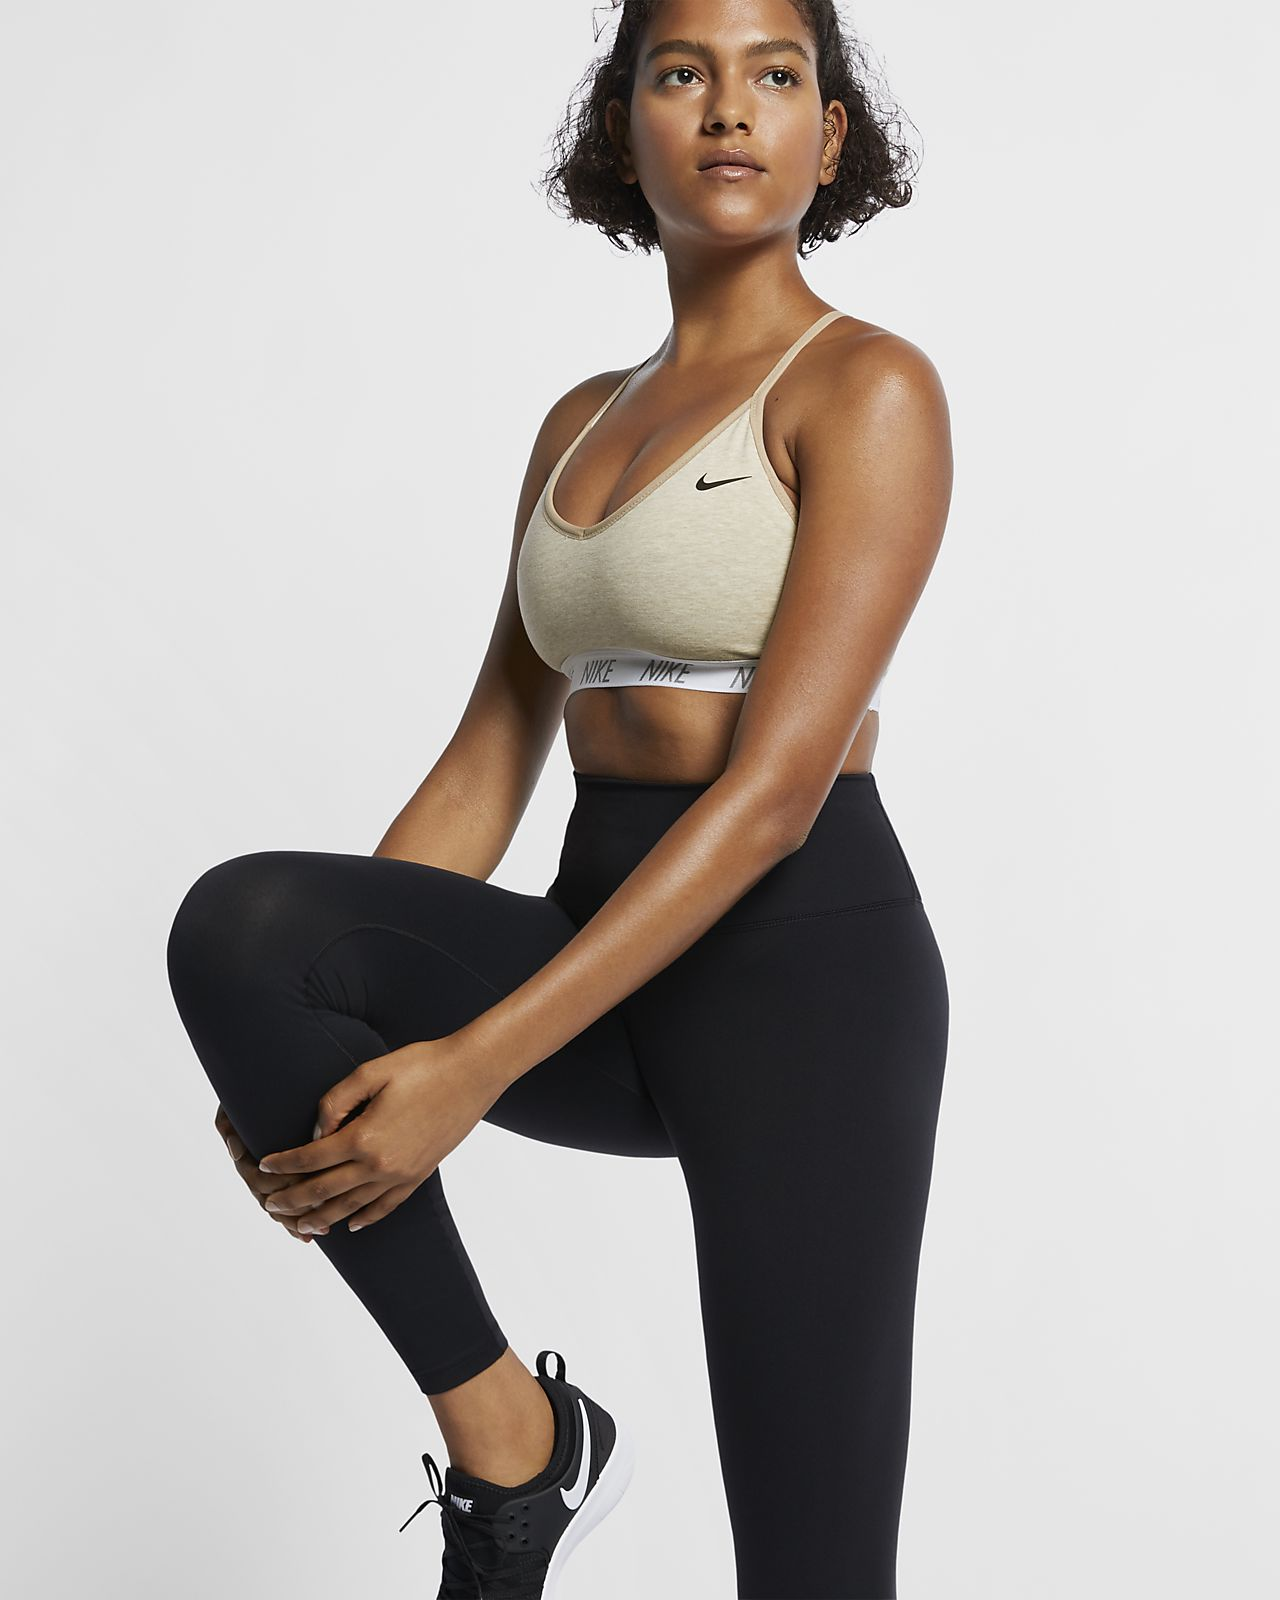 Nike Indy Soft Women's Light Support Sports Bra